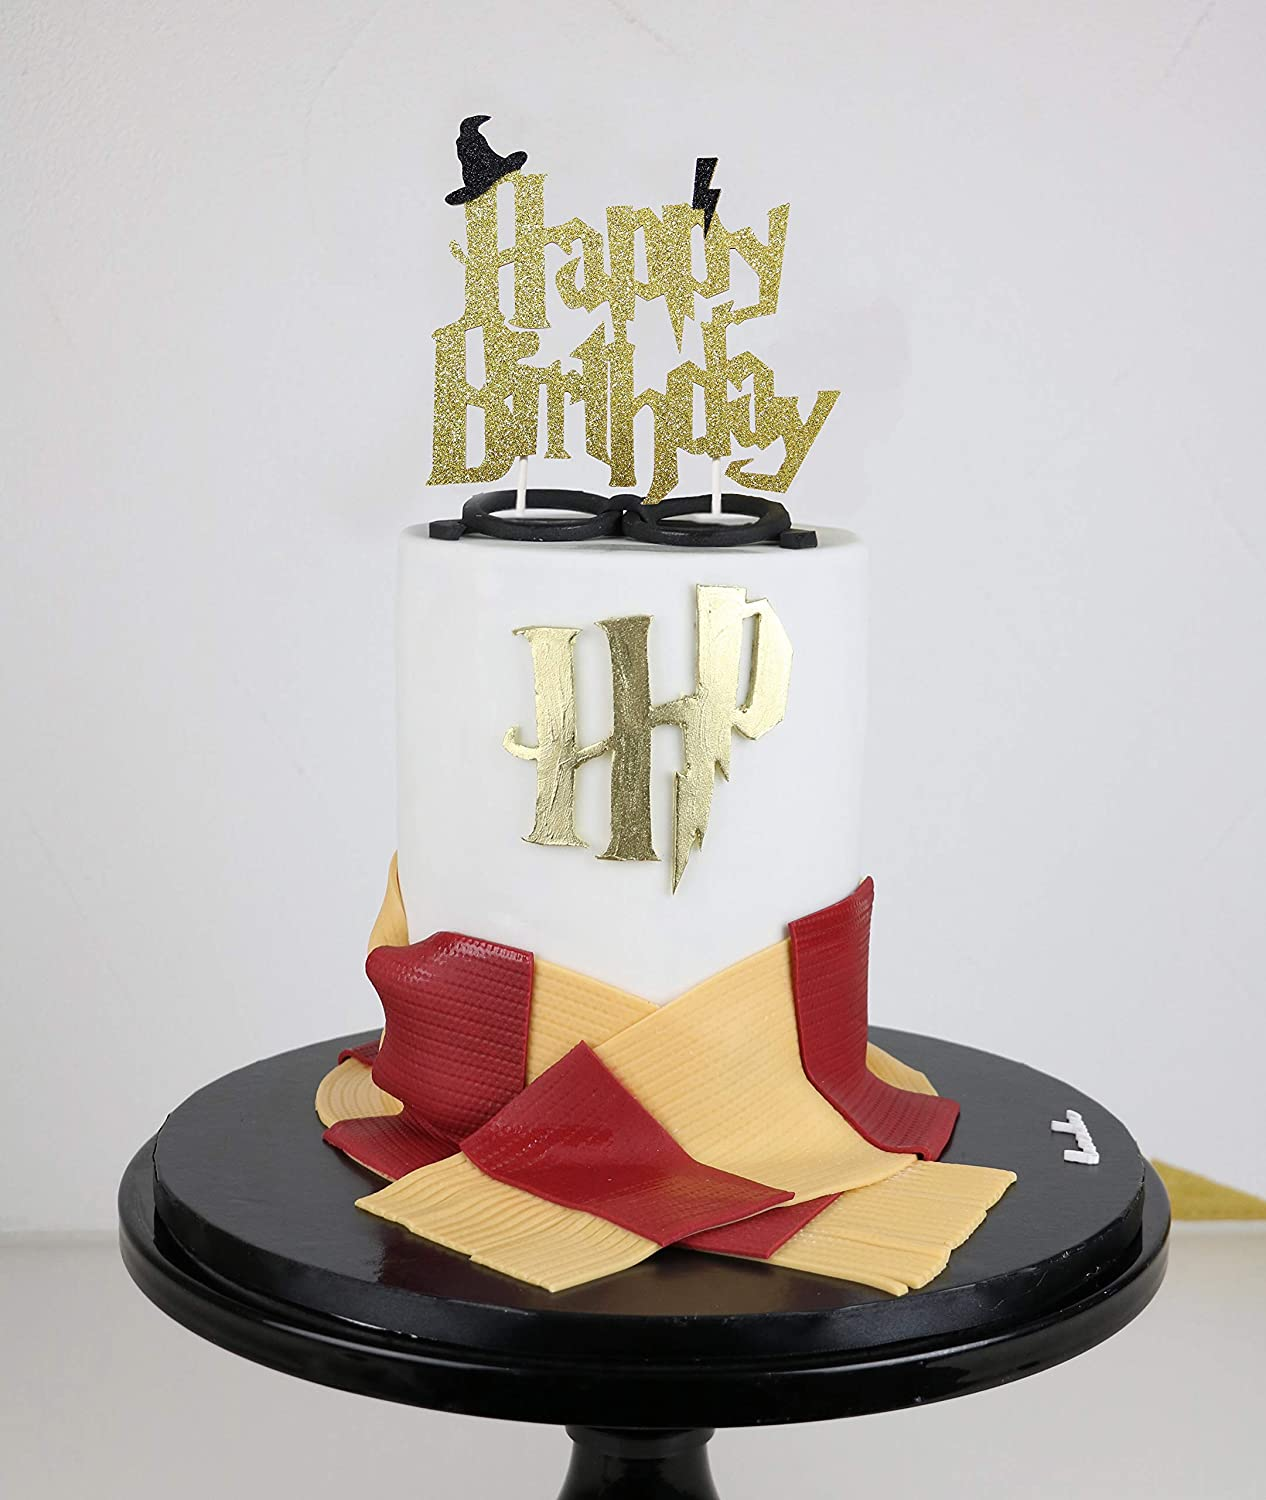 Amazon.com: Harry Potter - Decoración para tartas de ...